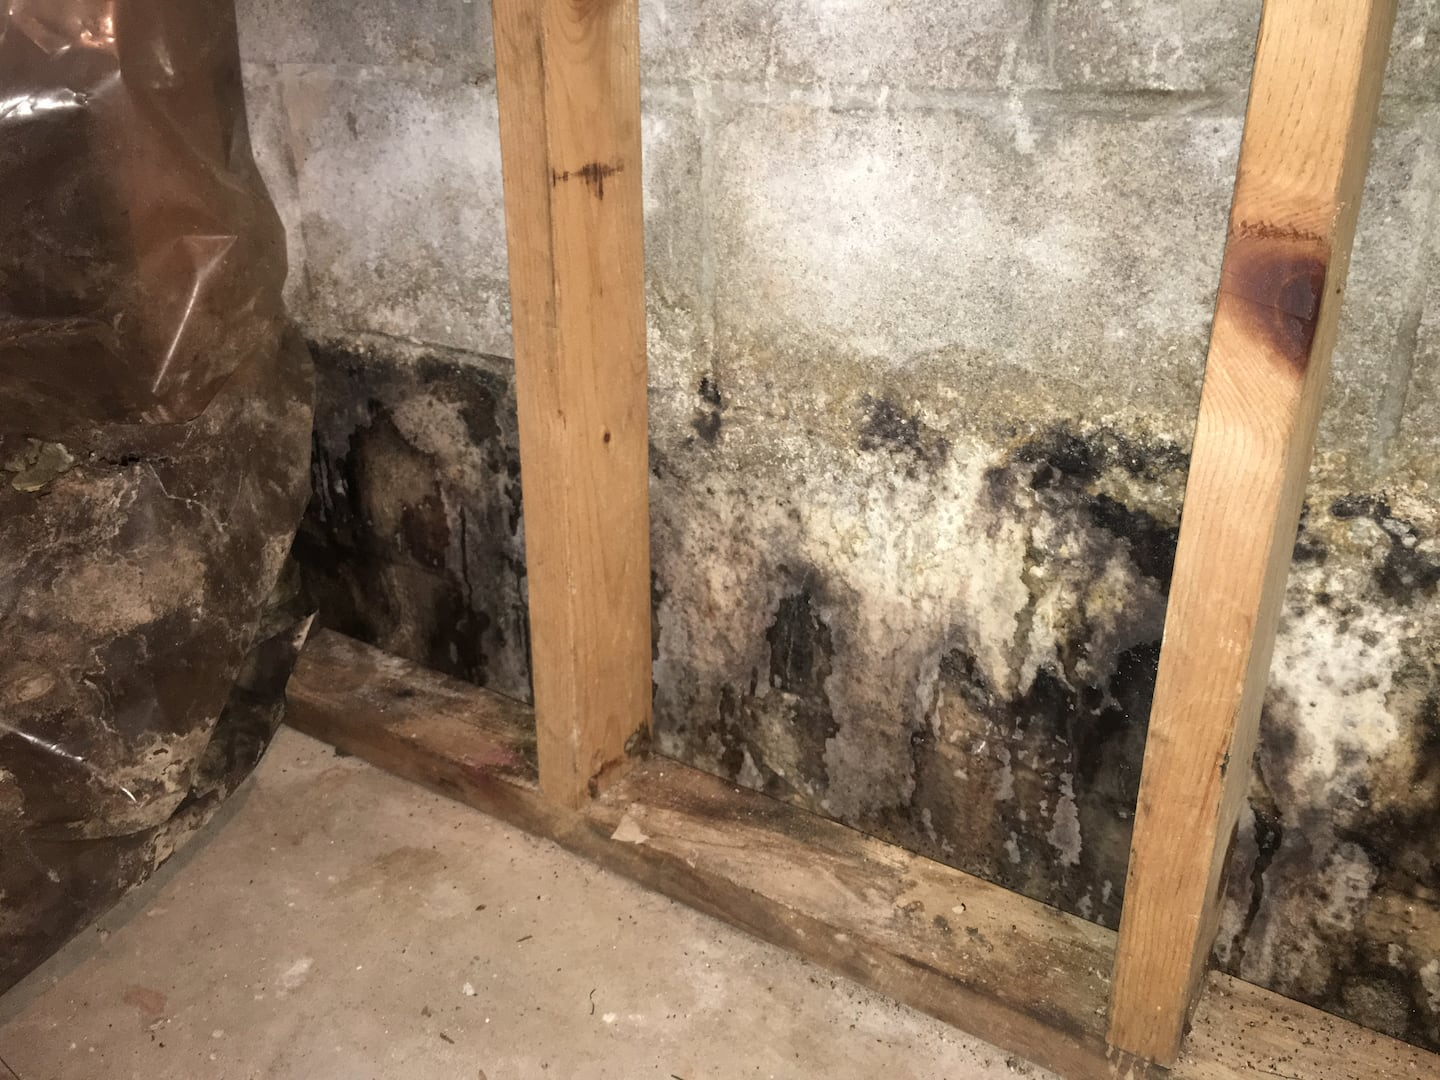 mold basement walls how to get rid of get rid of unpleasant smells